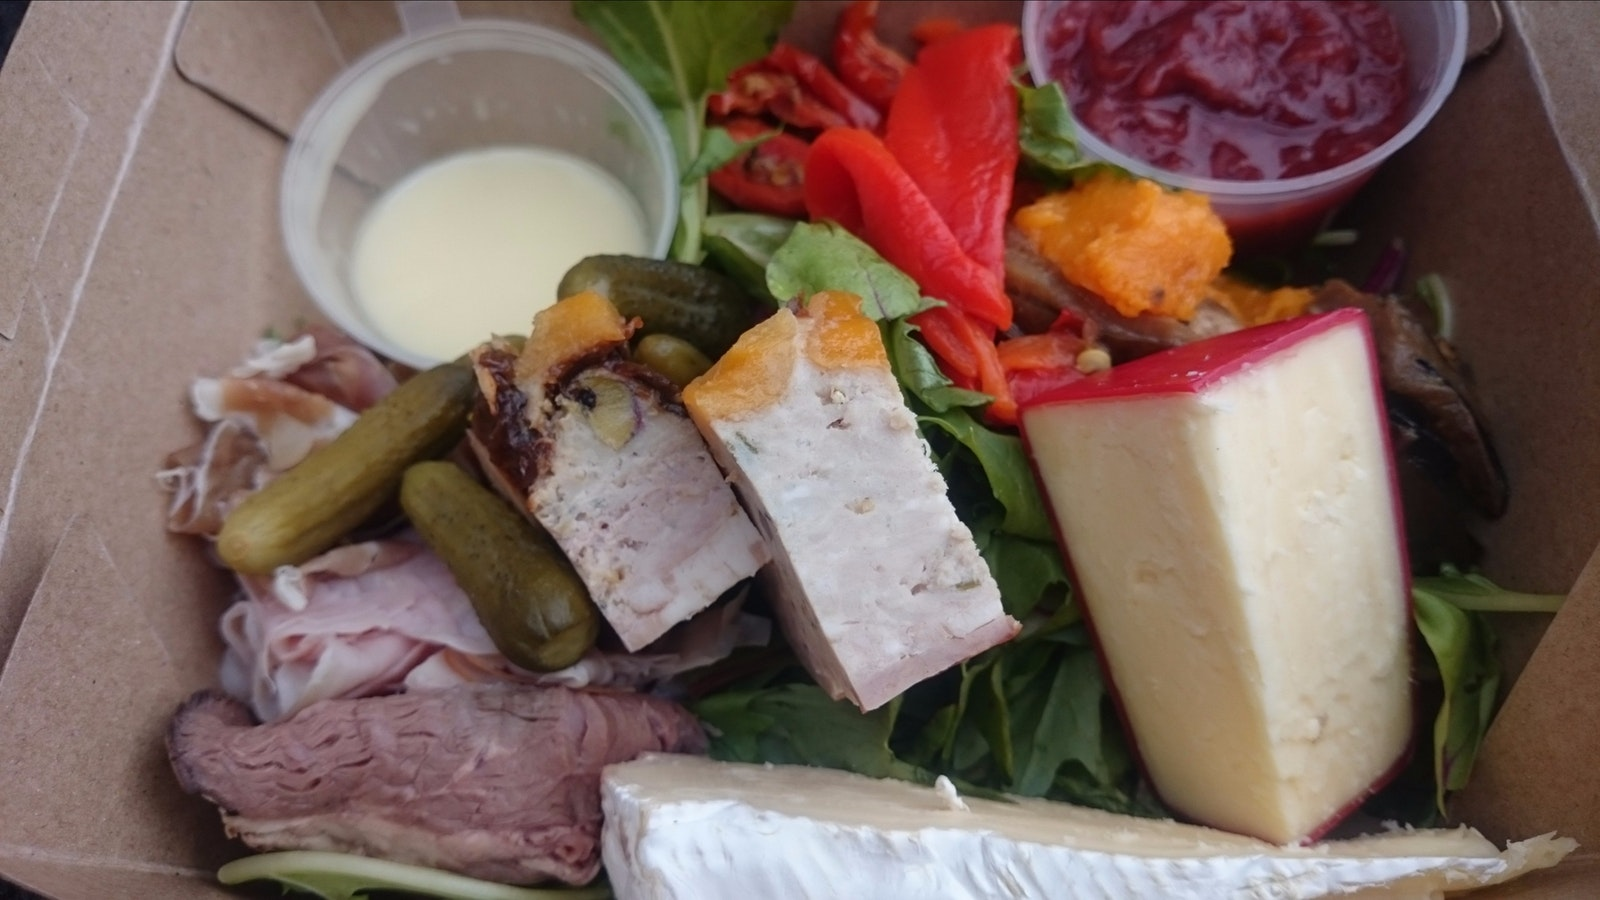 Ploughman's lunch from The Produce Store